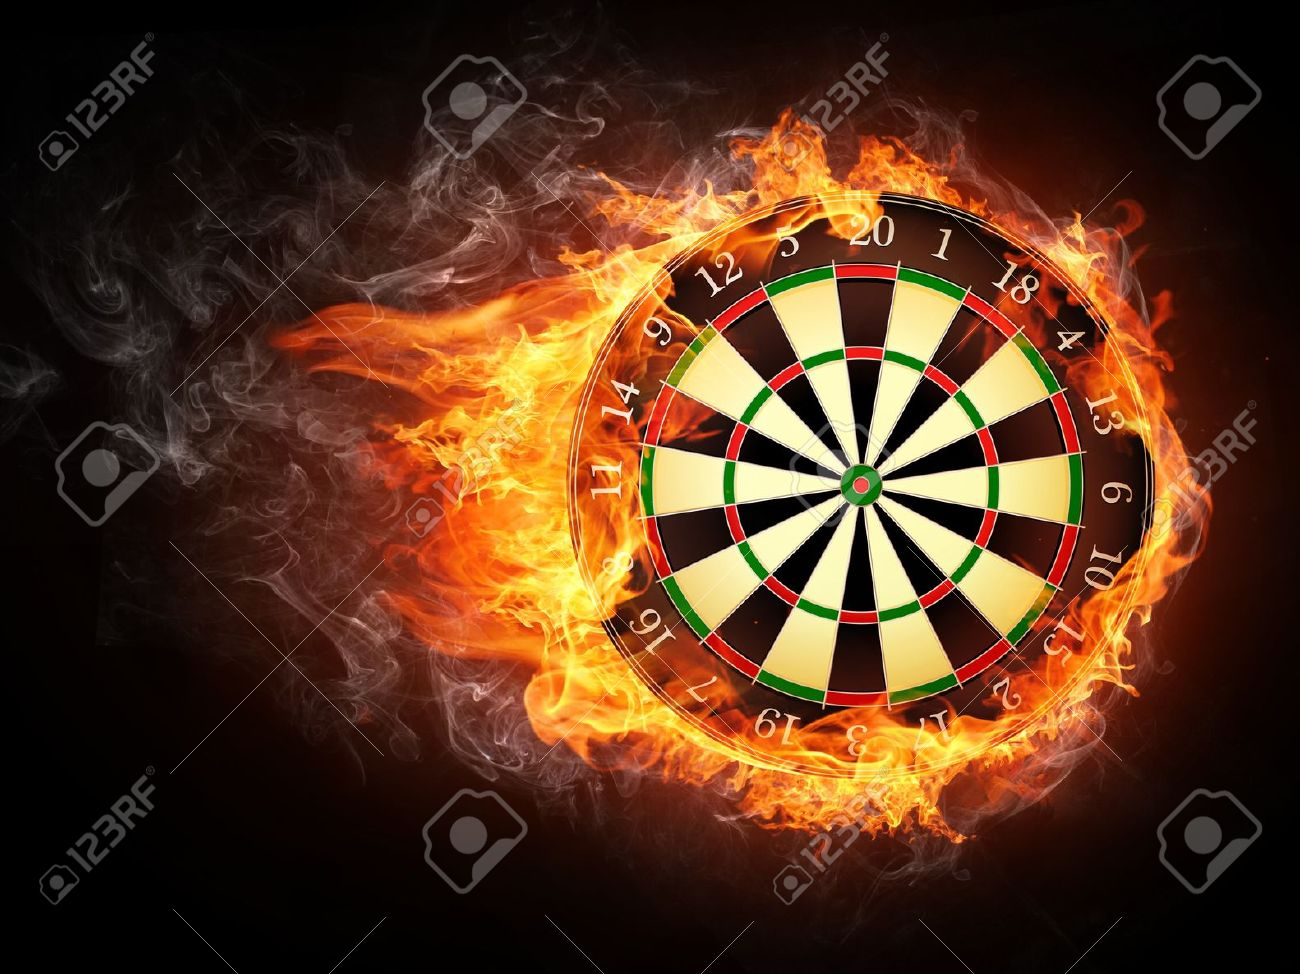 darts board stock photo picture and royalty free image image 10937615